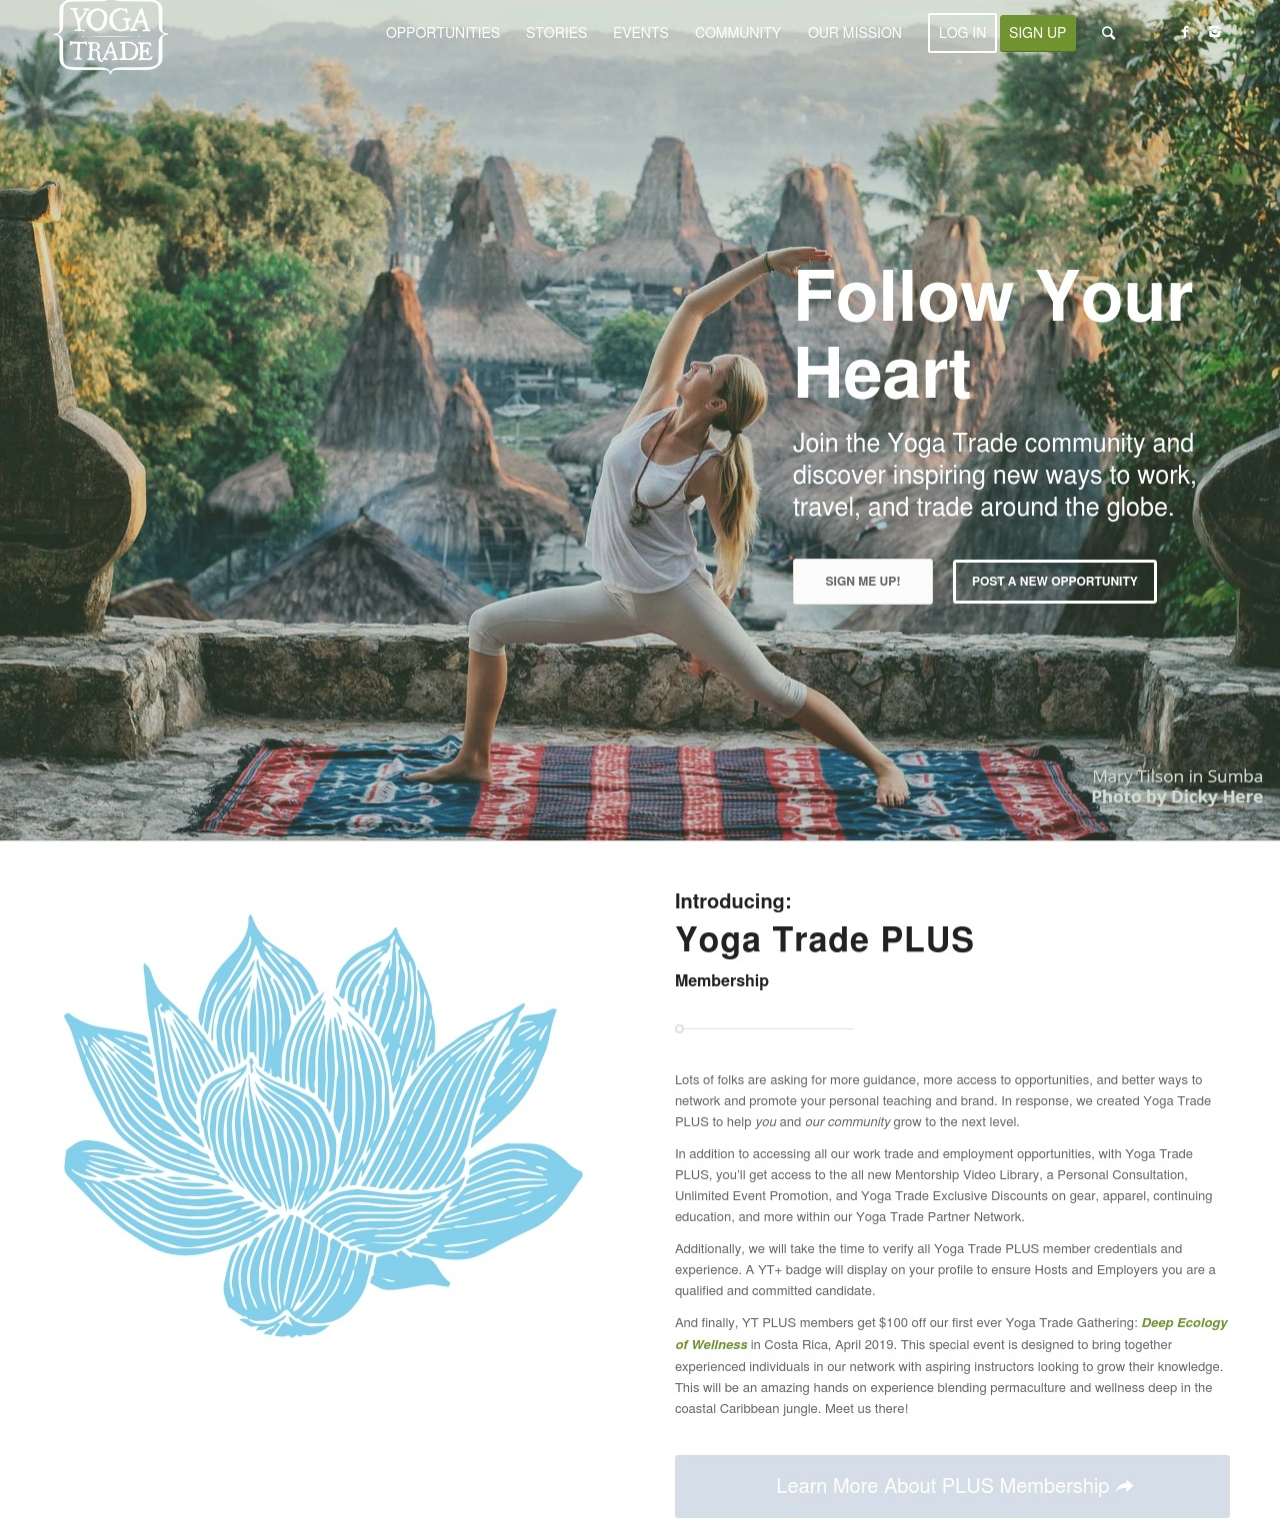 Yoga Trade's First Travel Rep! - Click to read more